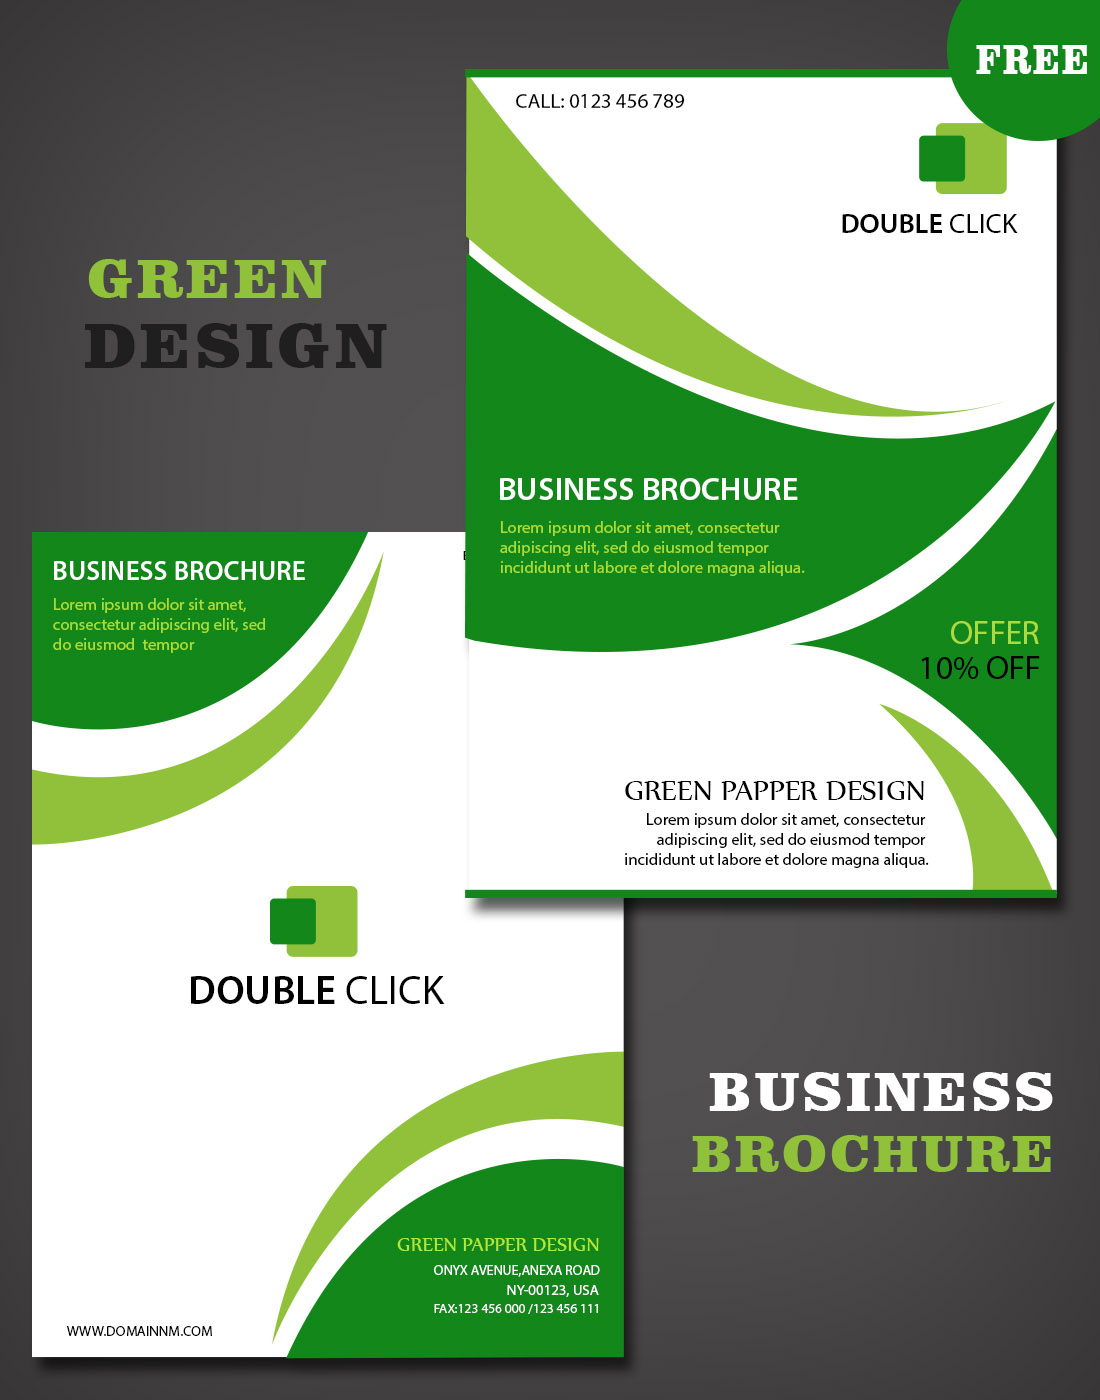 free business brochure templates download - business brochure templates download